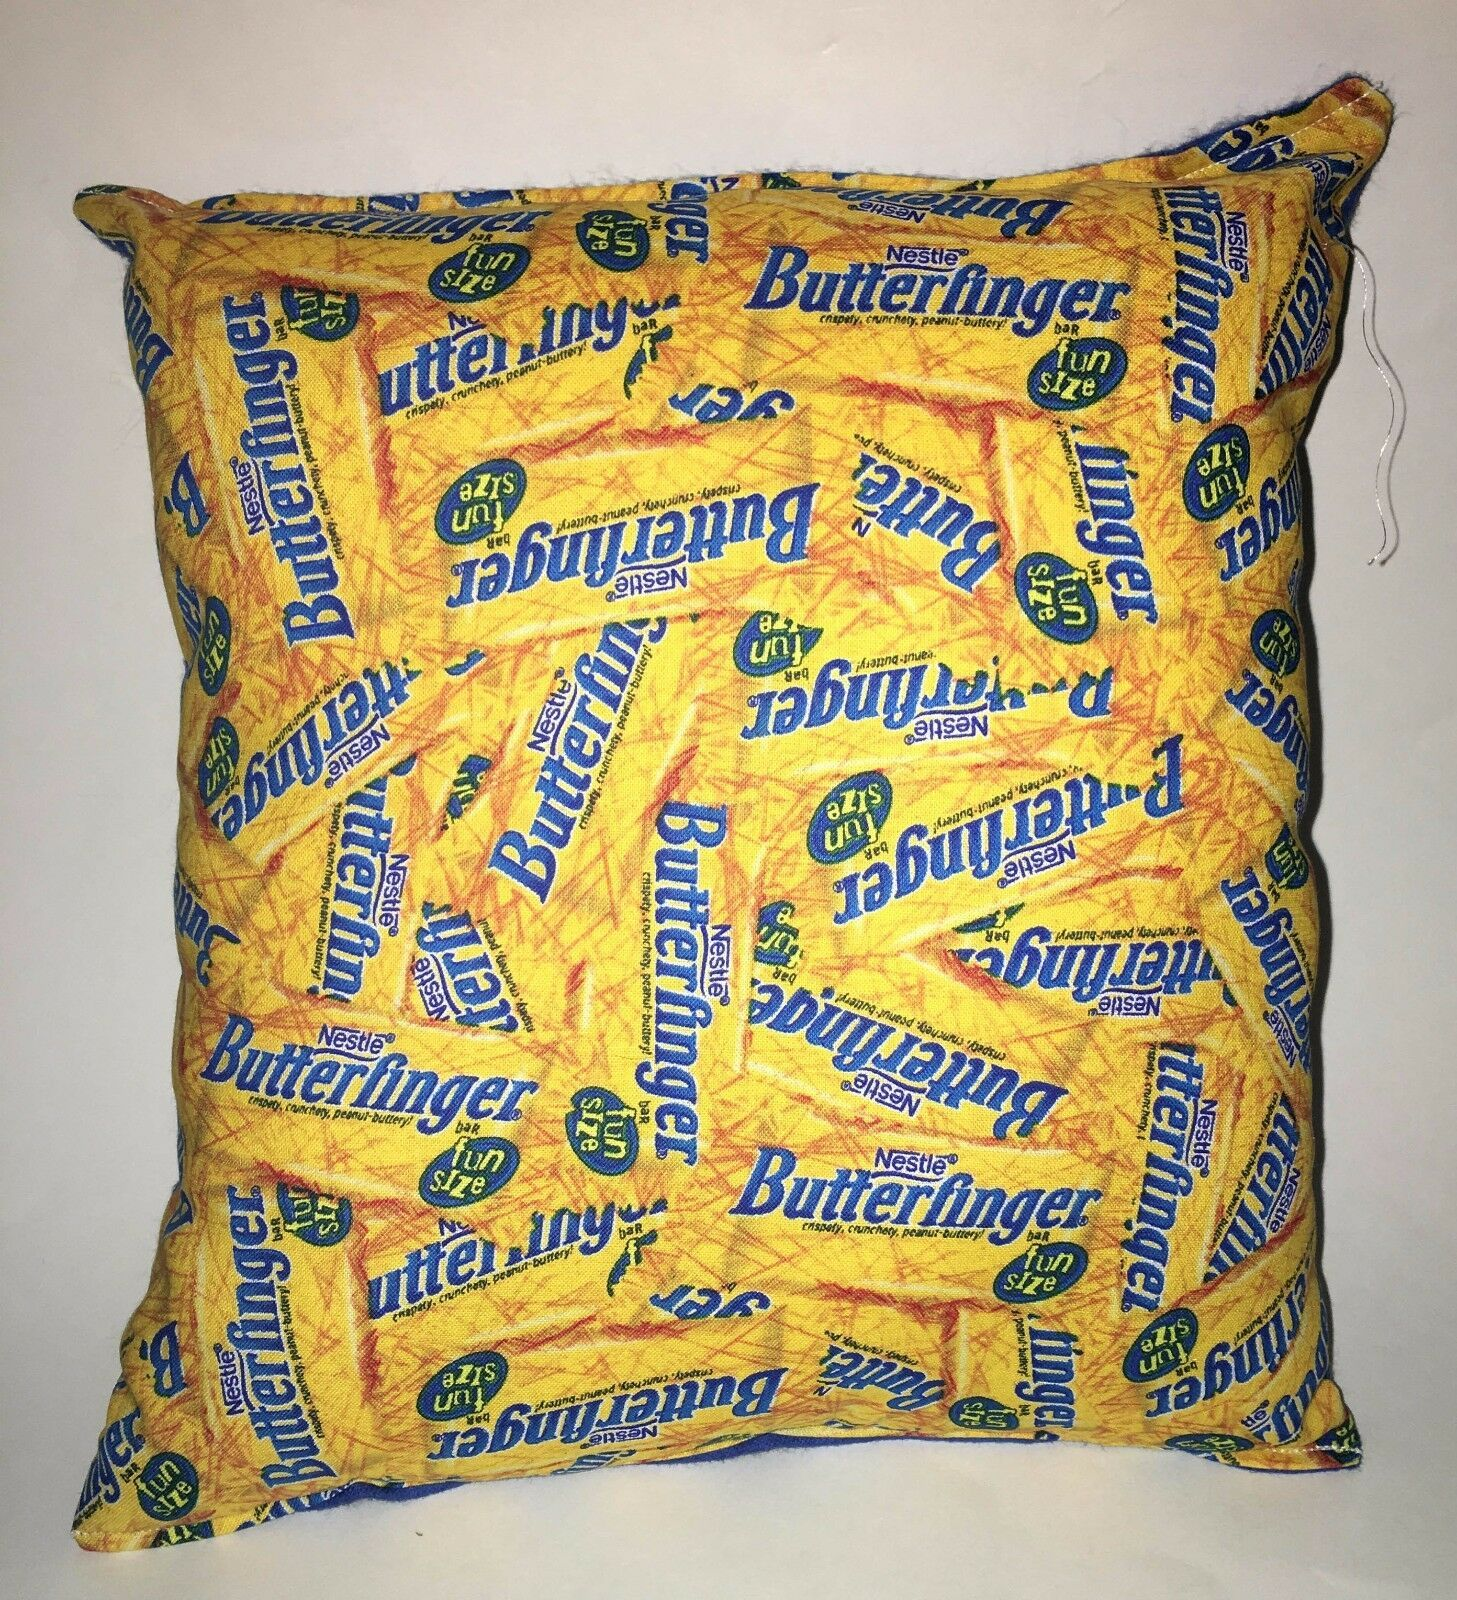 Butterfinger Pillow Nestle Butterfingers Candy Pillow HANDMADE Man Cave Pillow image 1